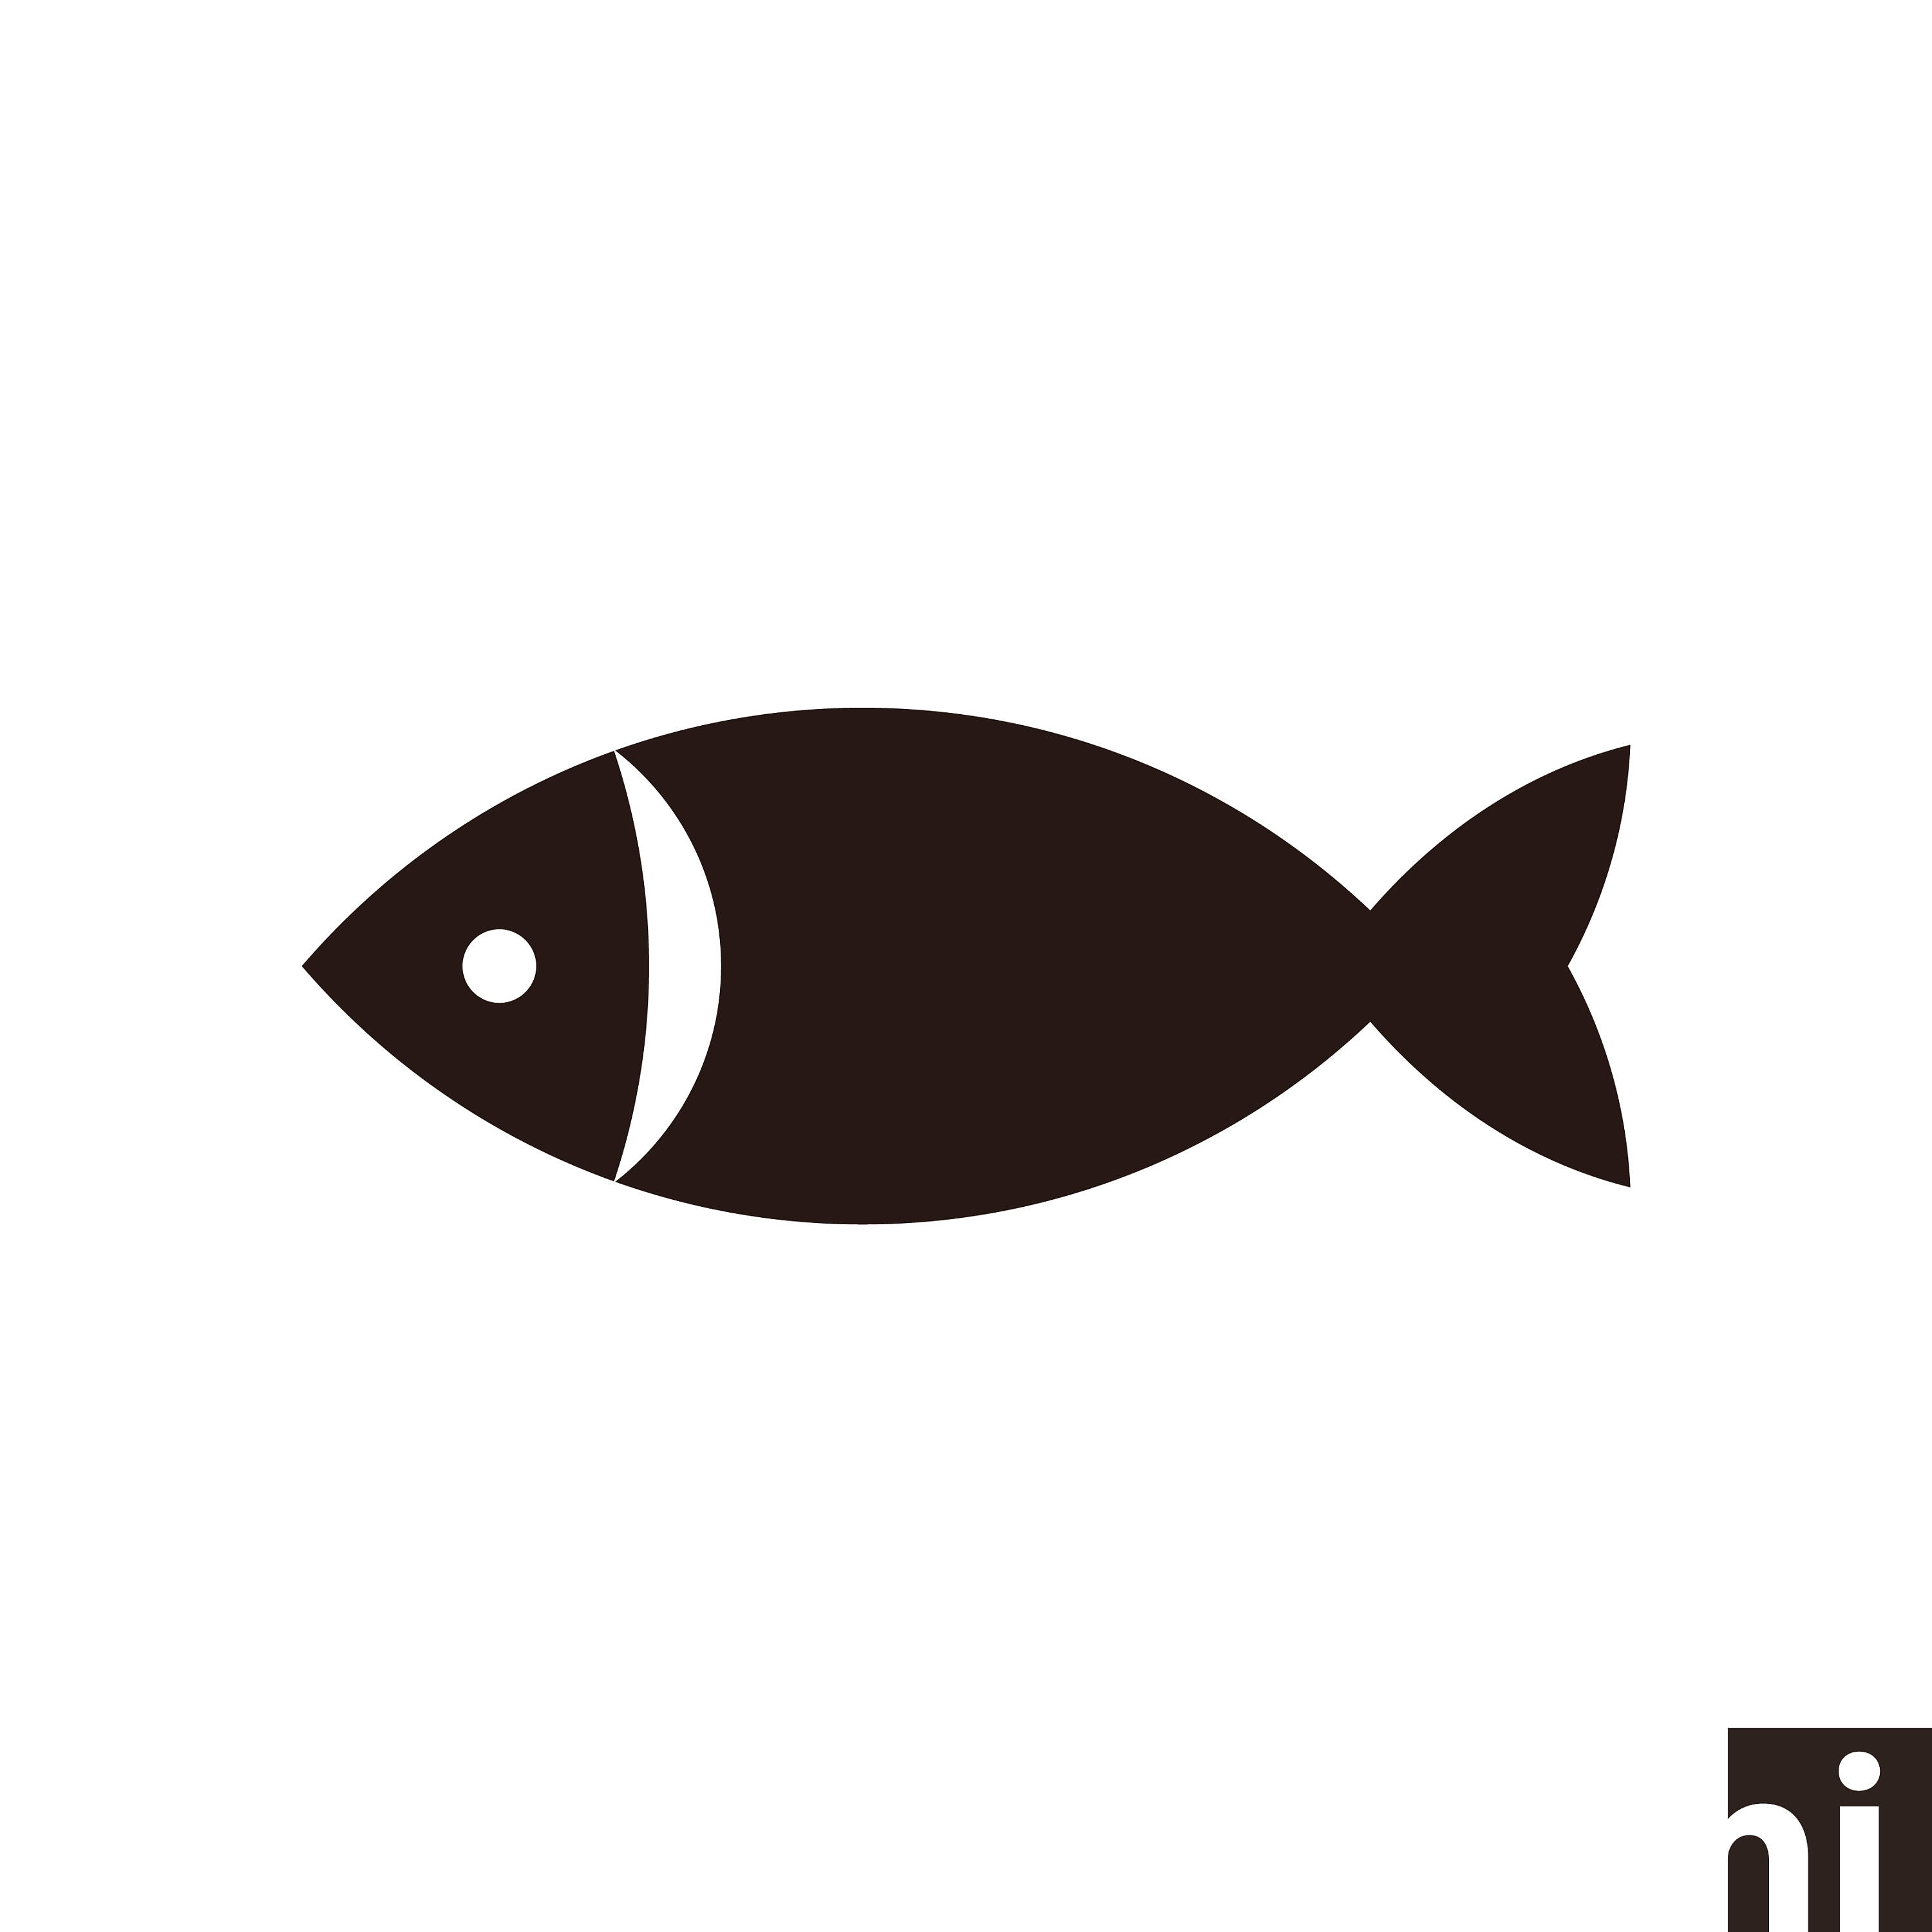 fish silhouette vector at getdrawings com free for personal use rh getdrawings com vector fish art vector fish and game